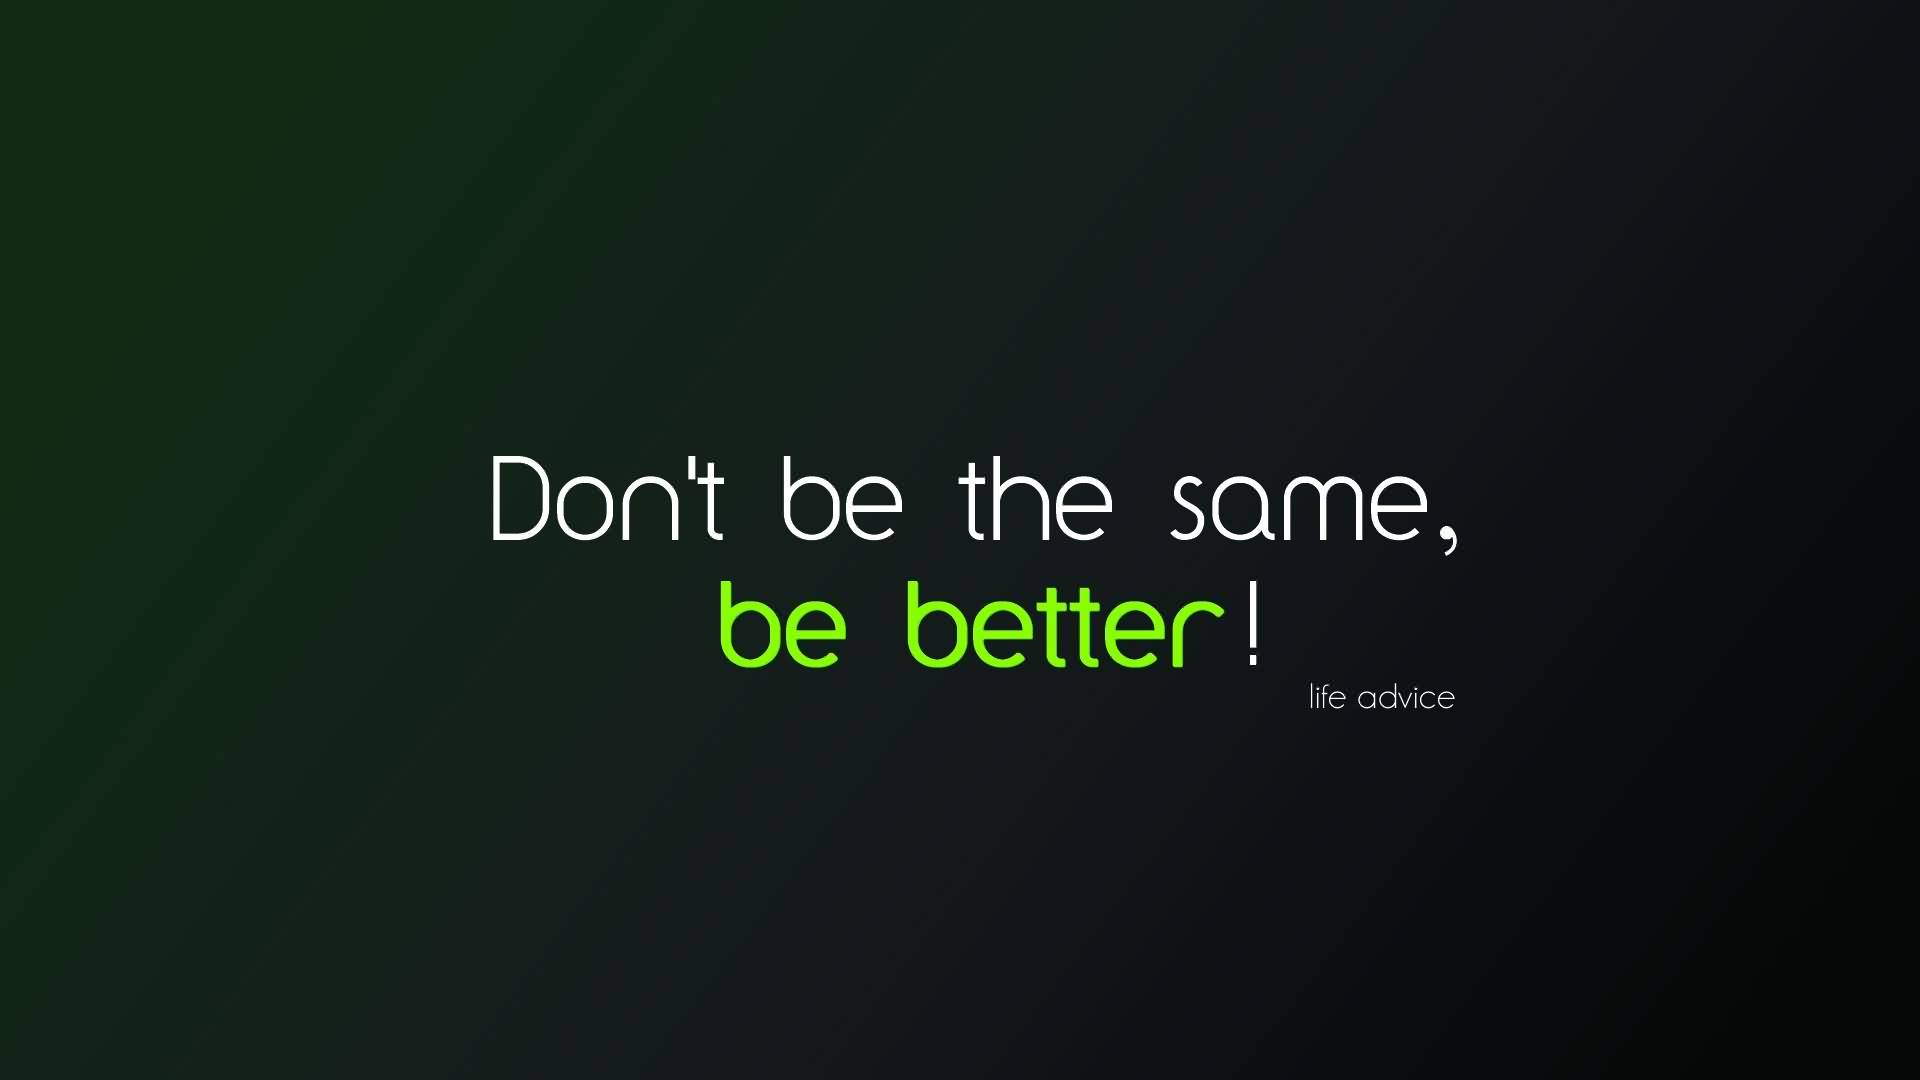 Better Life Quote Image-Be Better don't be the same